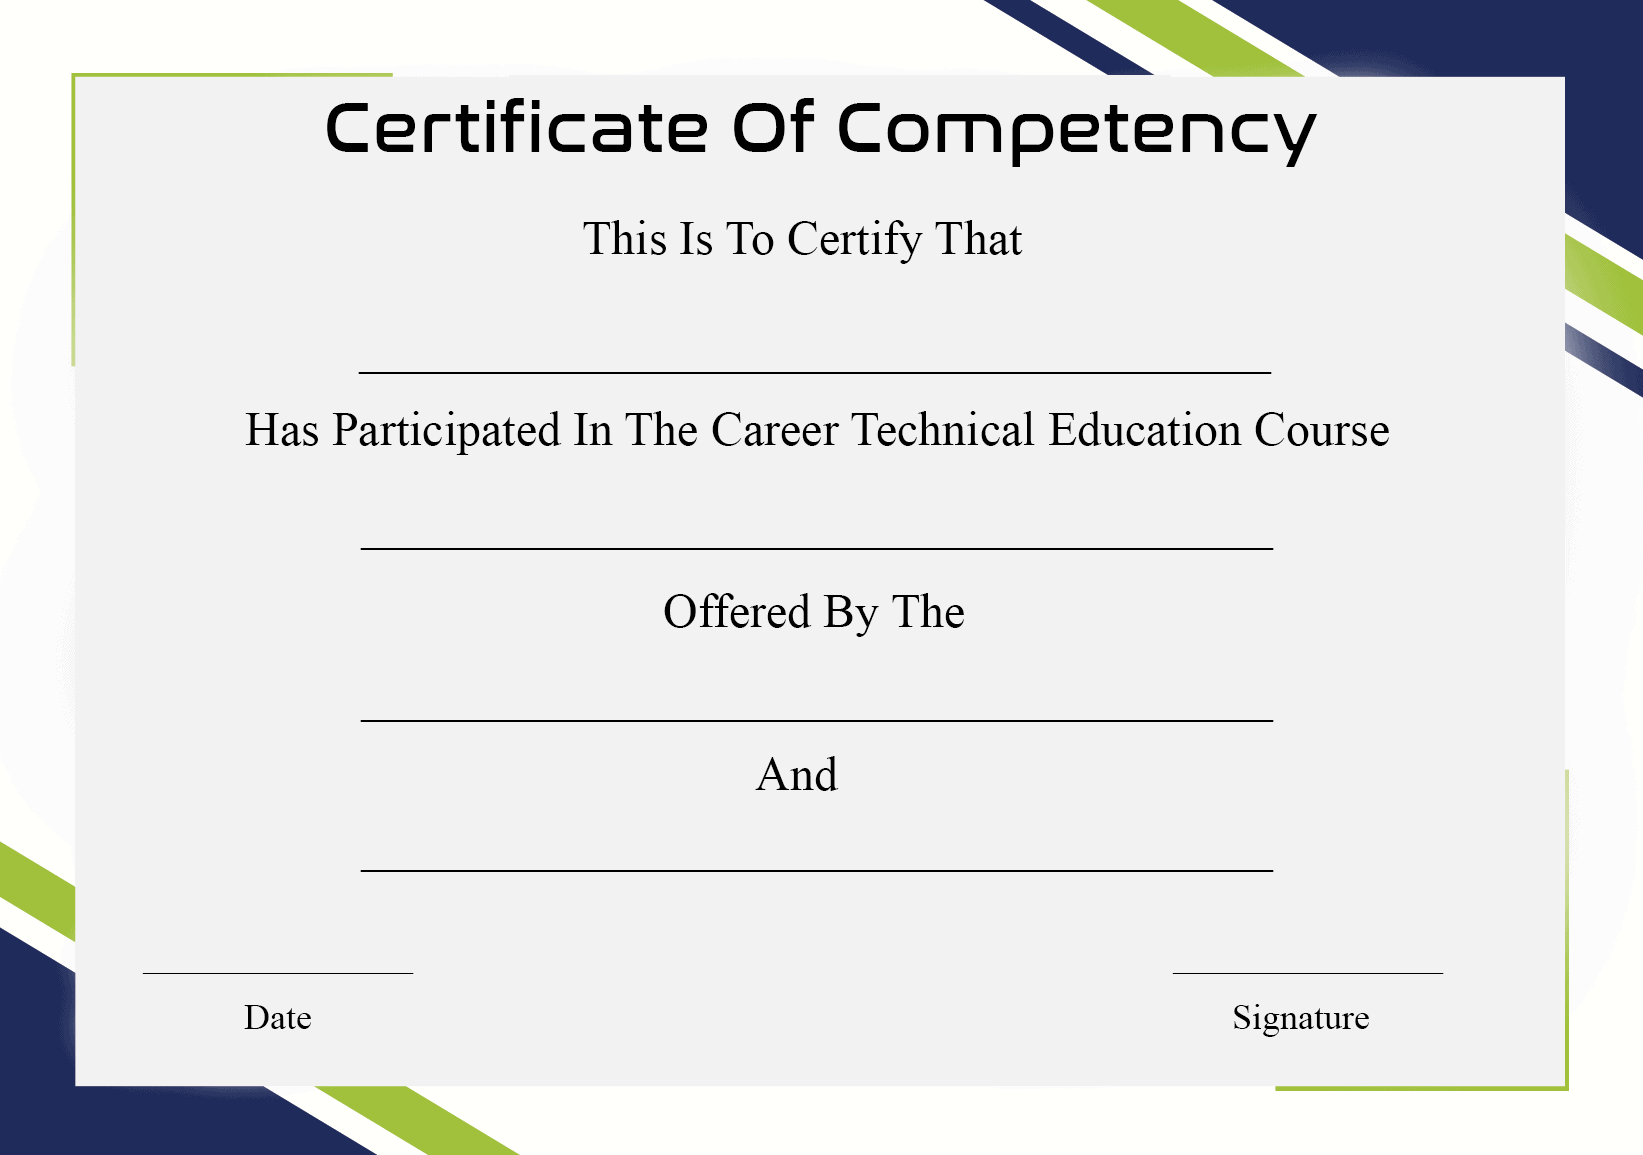 Certificate Of Competency Template